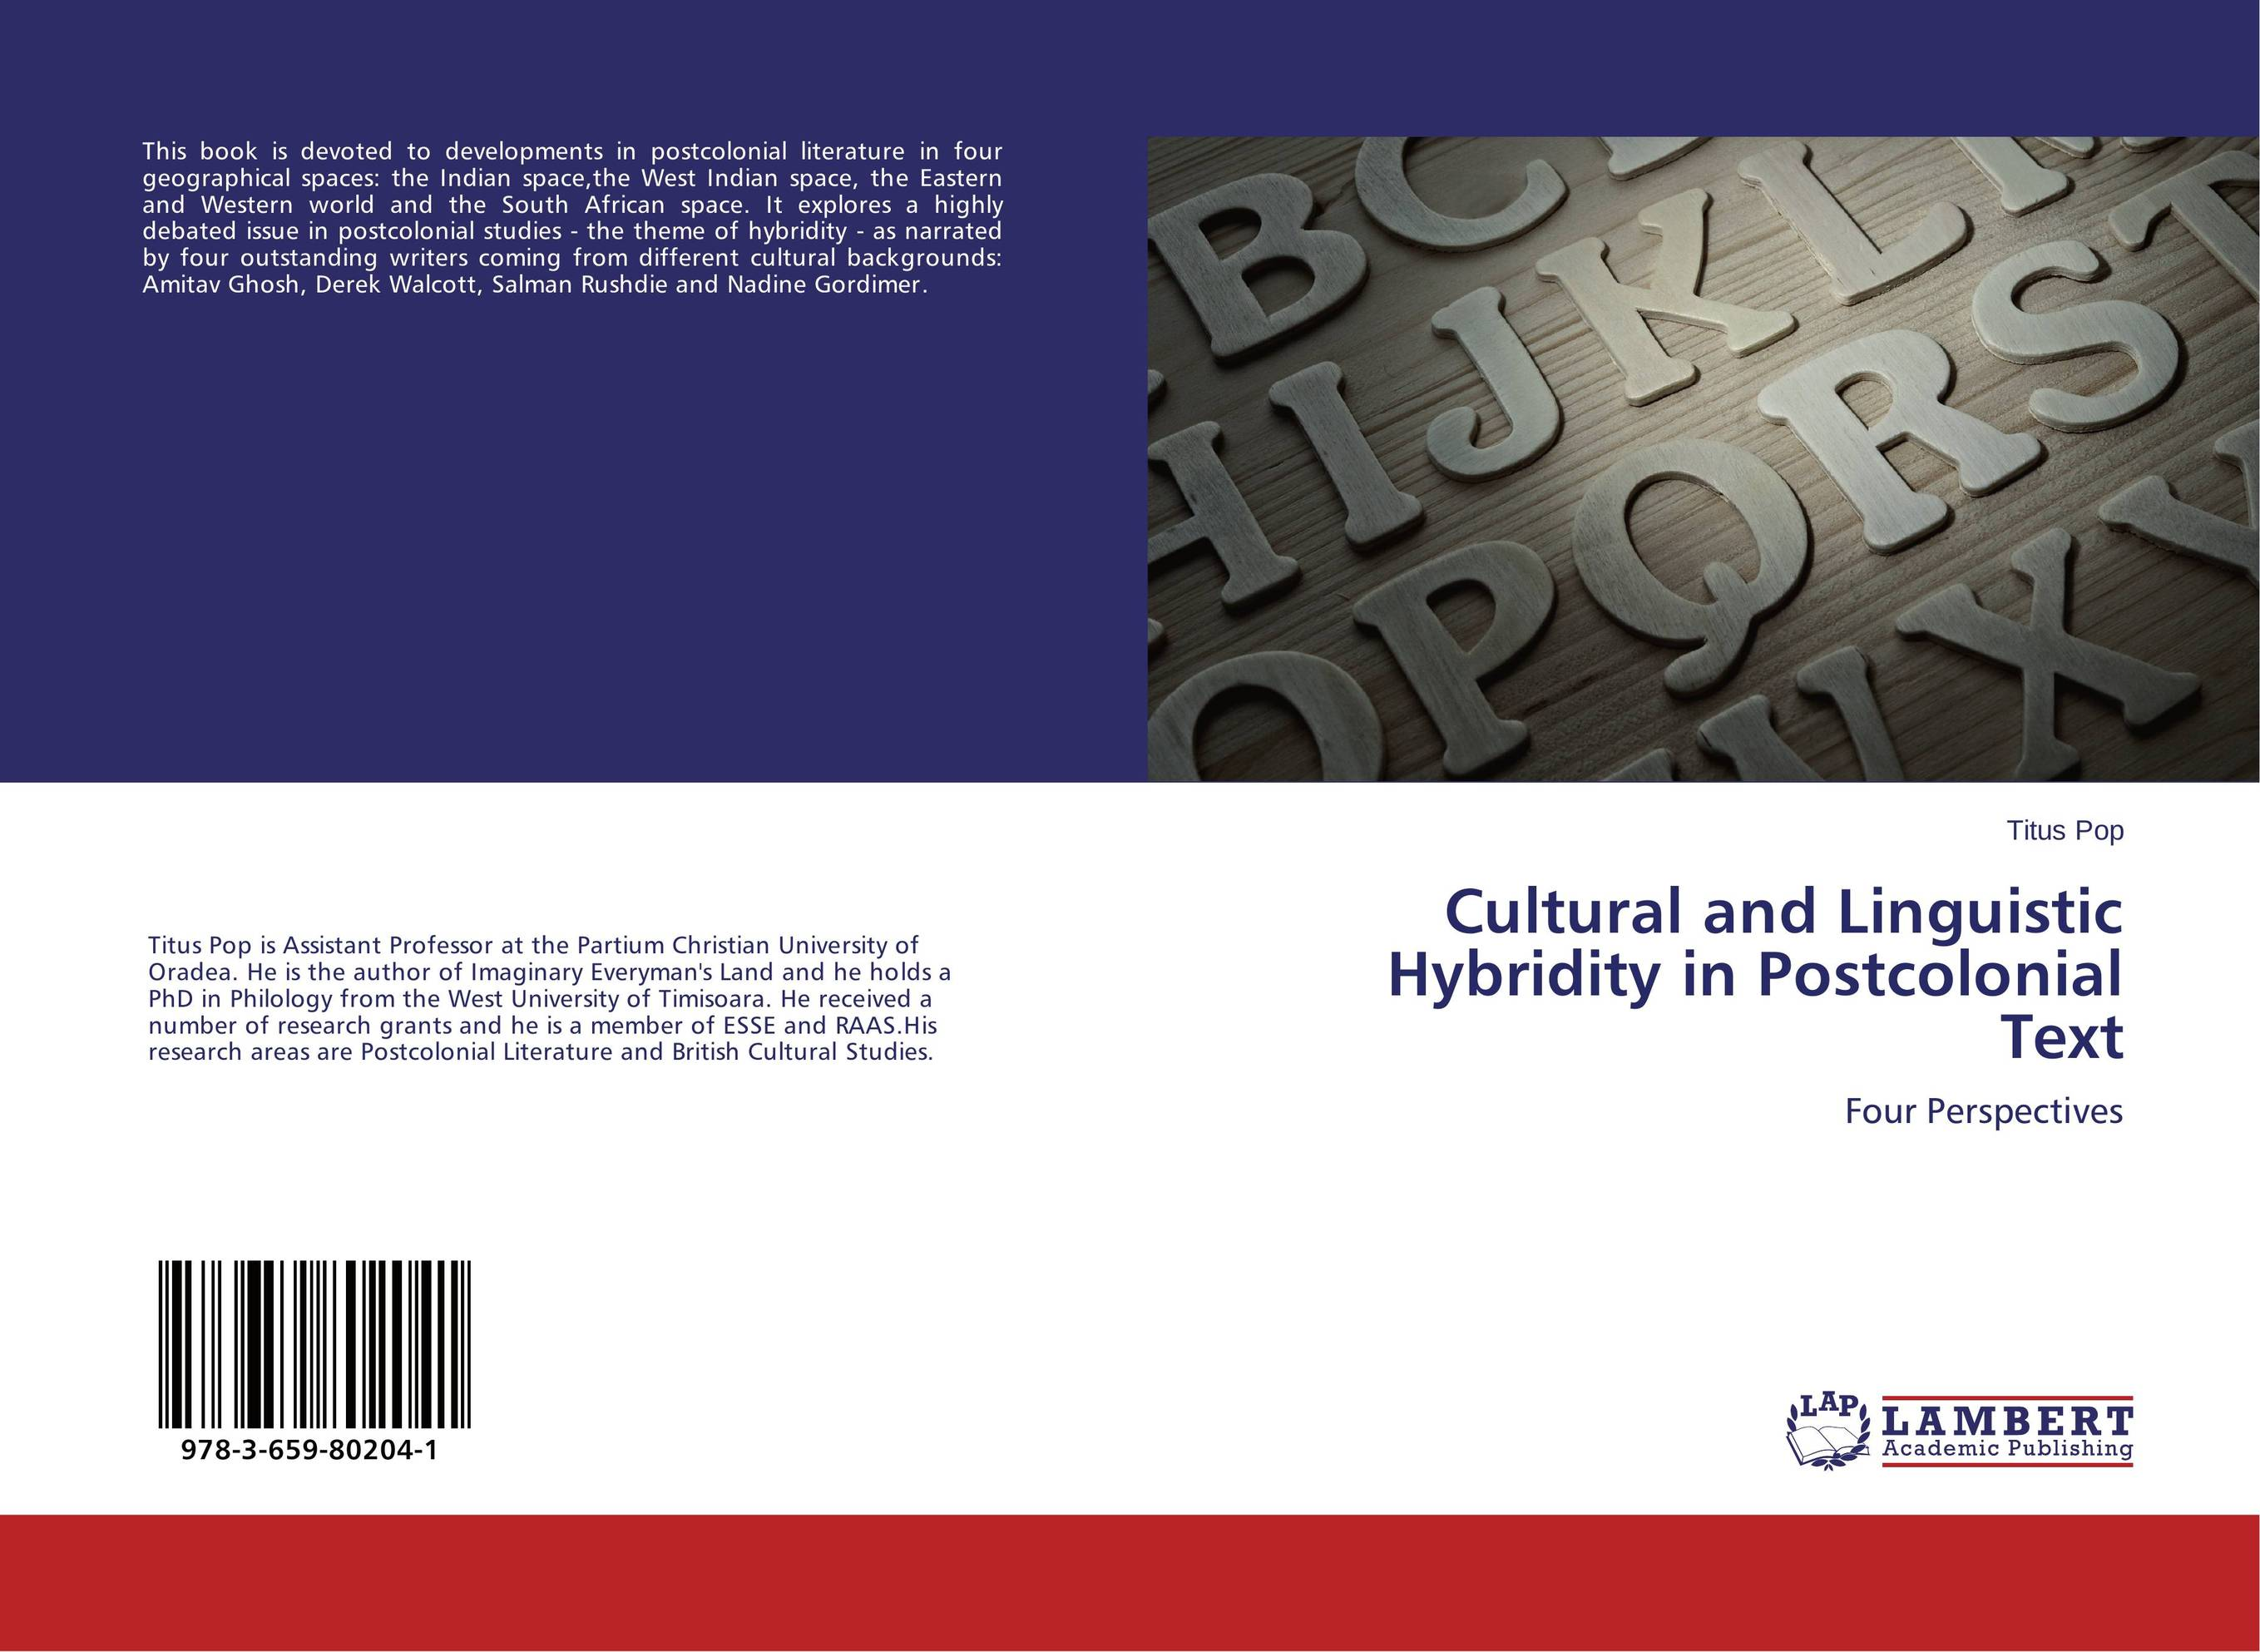 Cultural and Linguistic Hybridity in Postcolonial Text arindam ghosh hazra studies on boundary conditions and noncommutativity in string theory